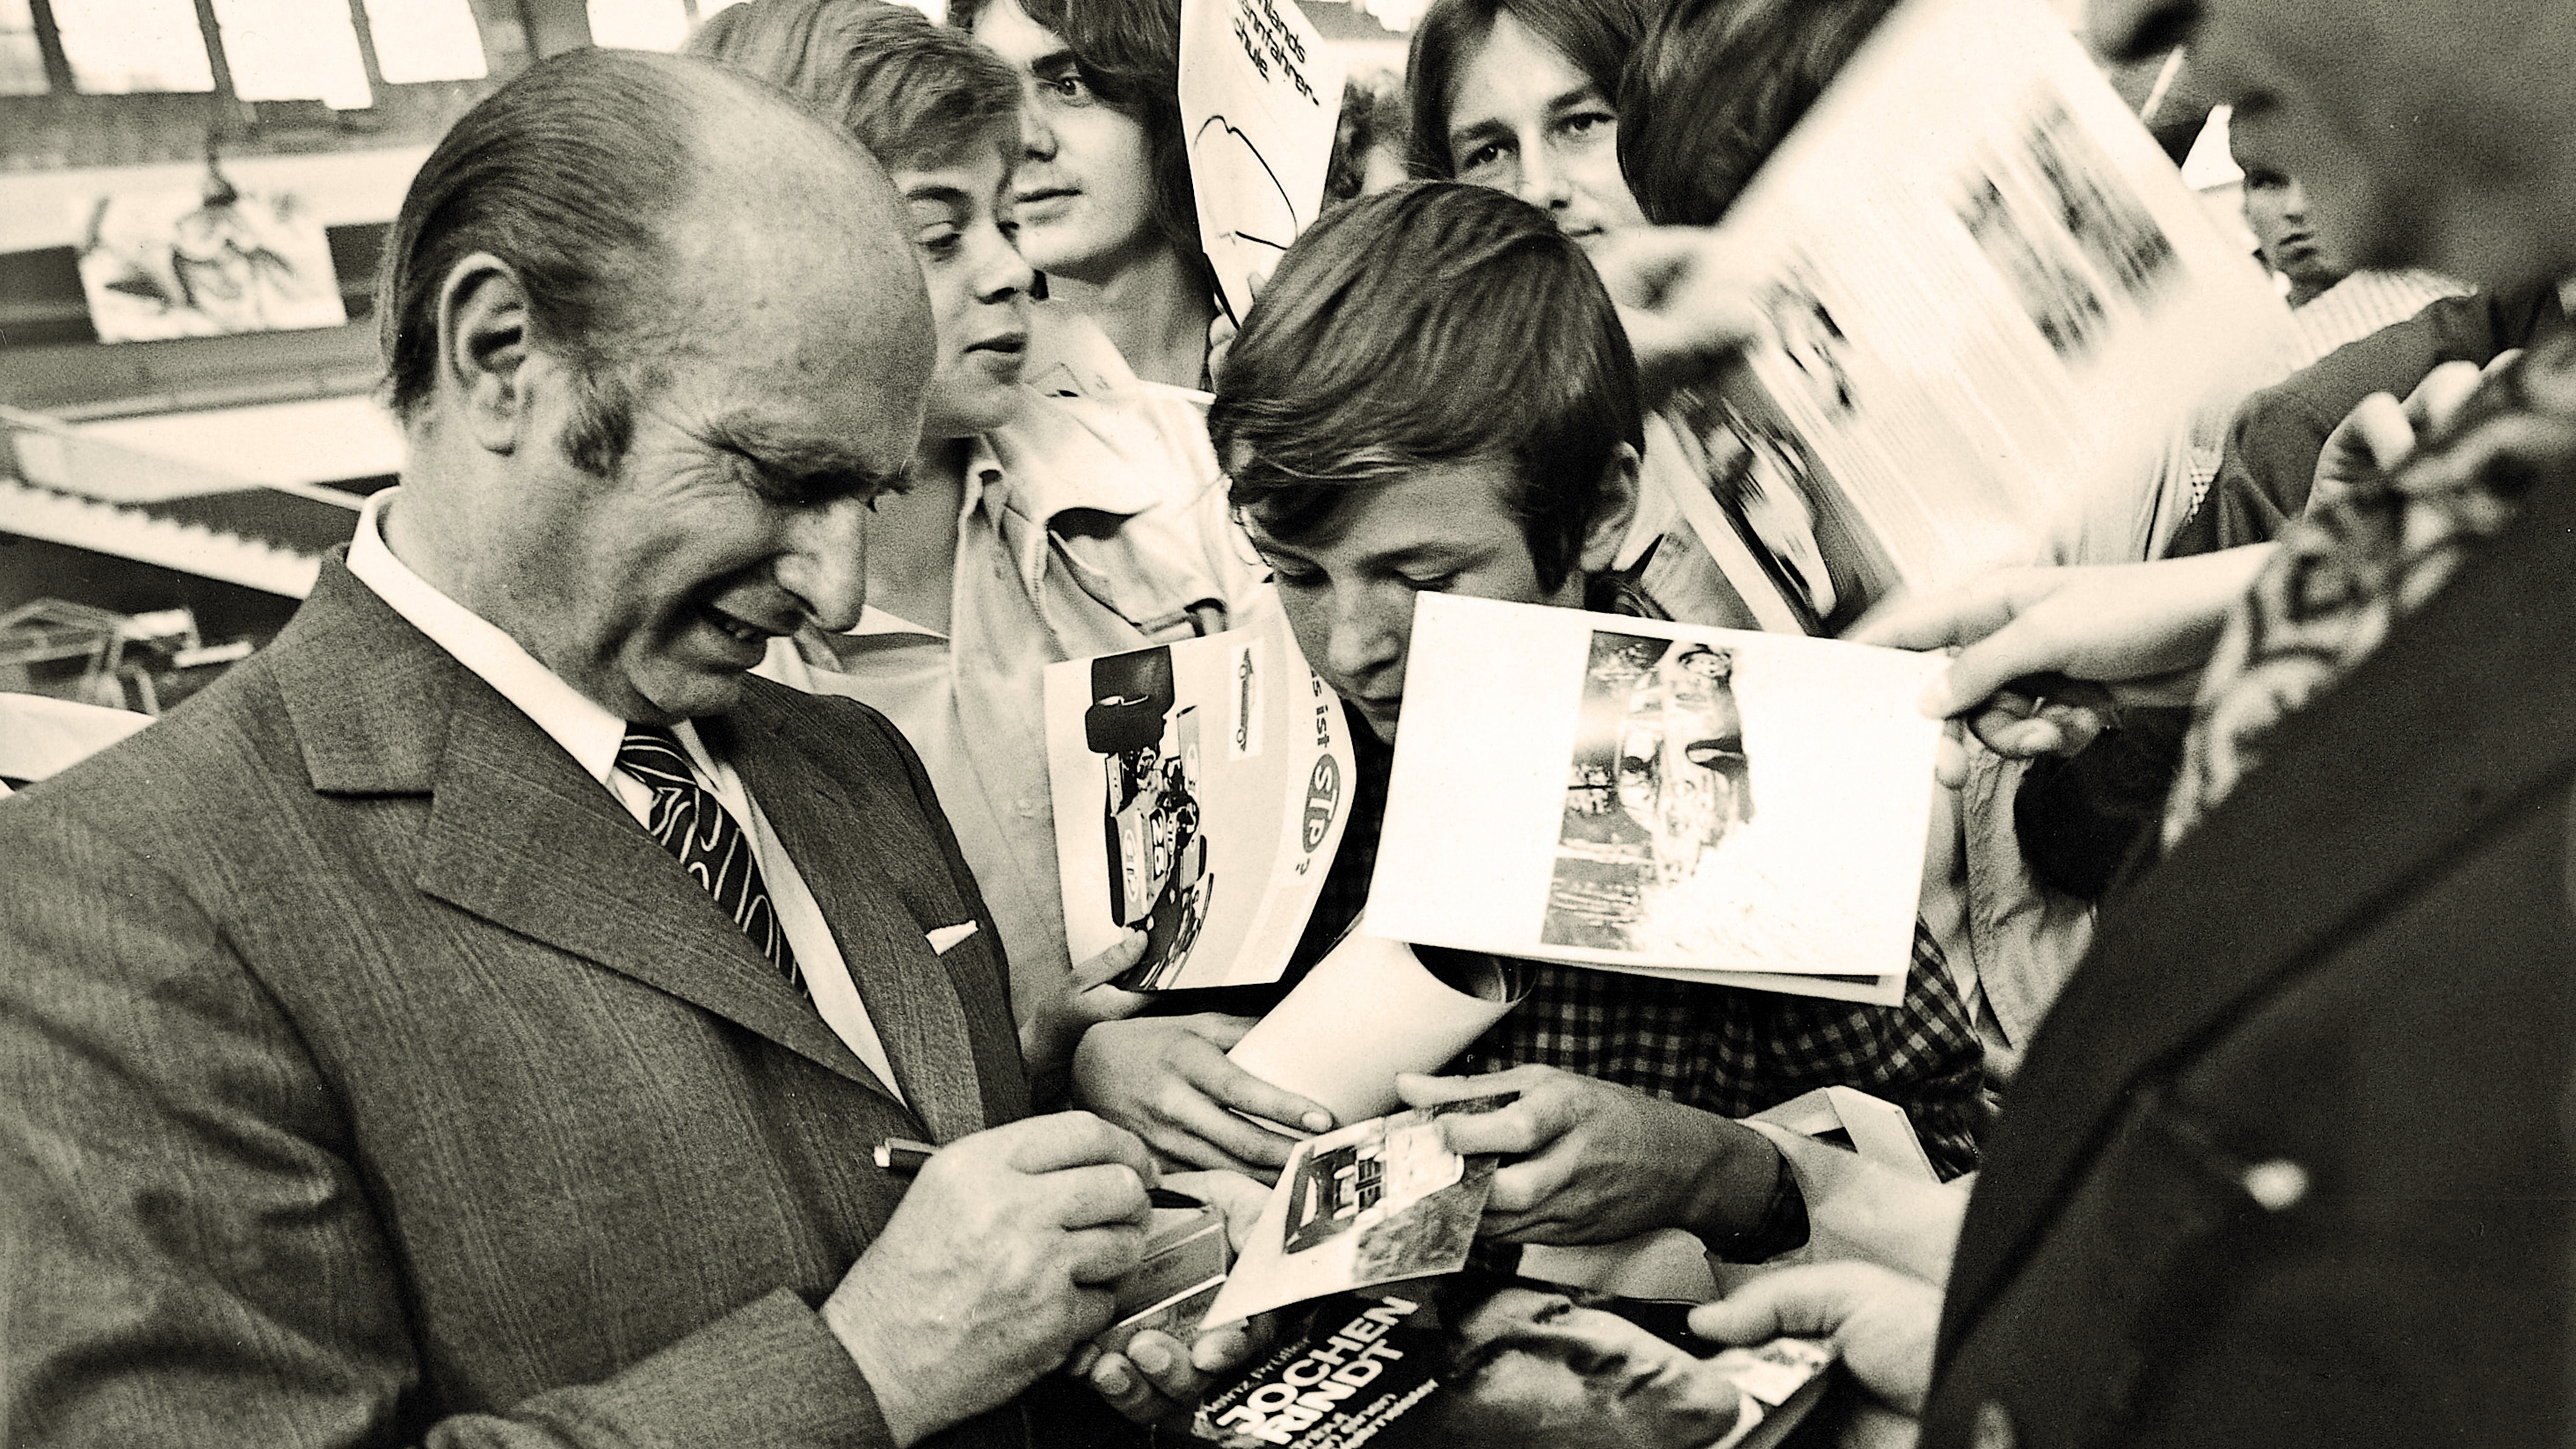 Juan Manuel Fangio, five-time Formula 1 World Champion, signs autographs for his fans